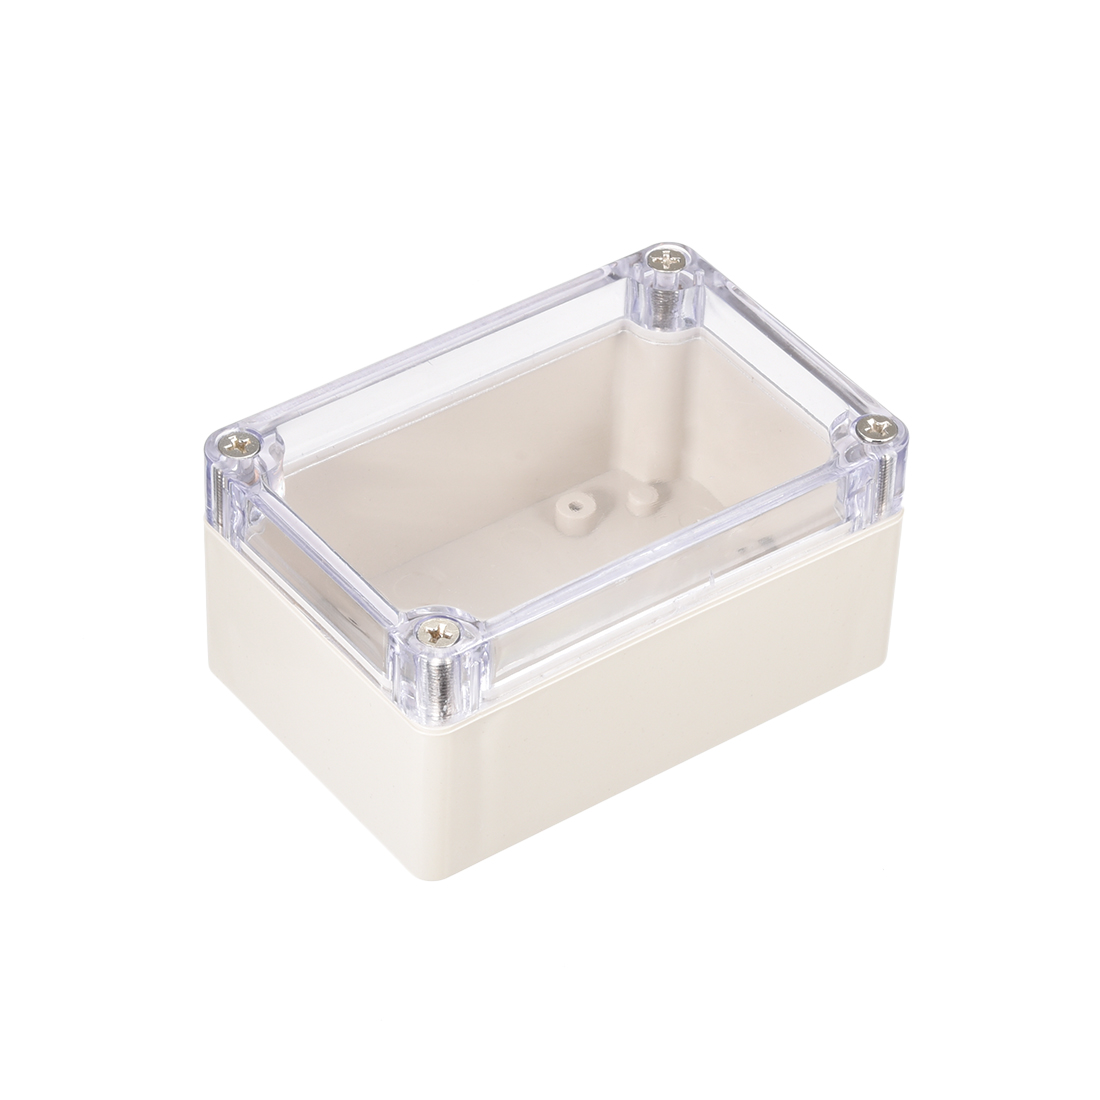 """3.9""""x2.7""""x2""""(100mm x 68mm x 50mm) ABS Junction Box Universal Project Enclosure w PC Transparent Cover"""